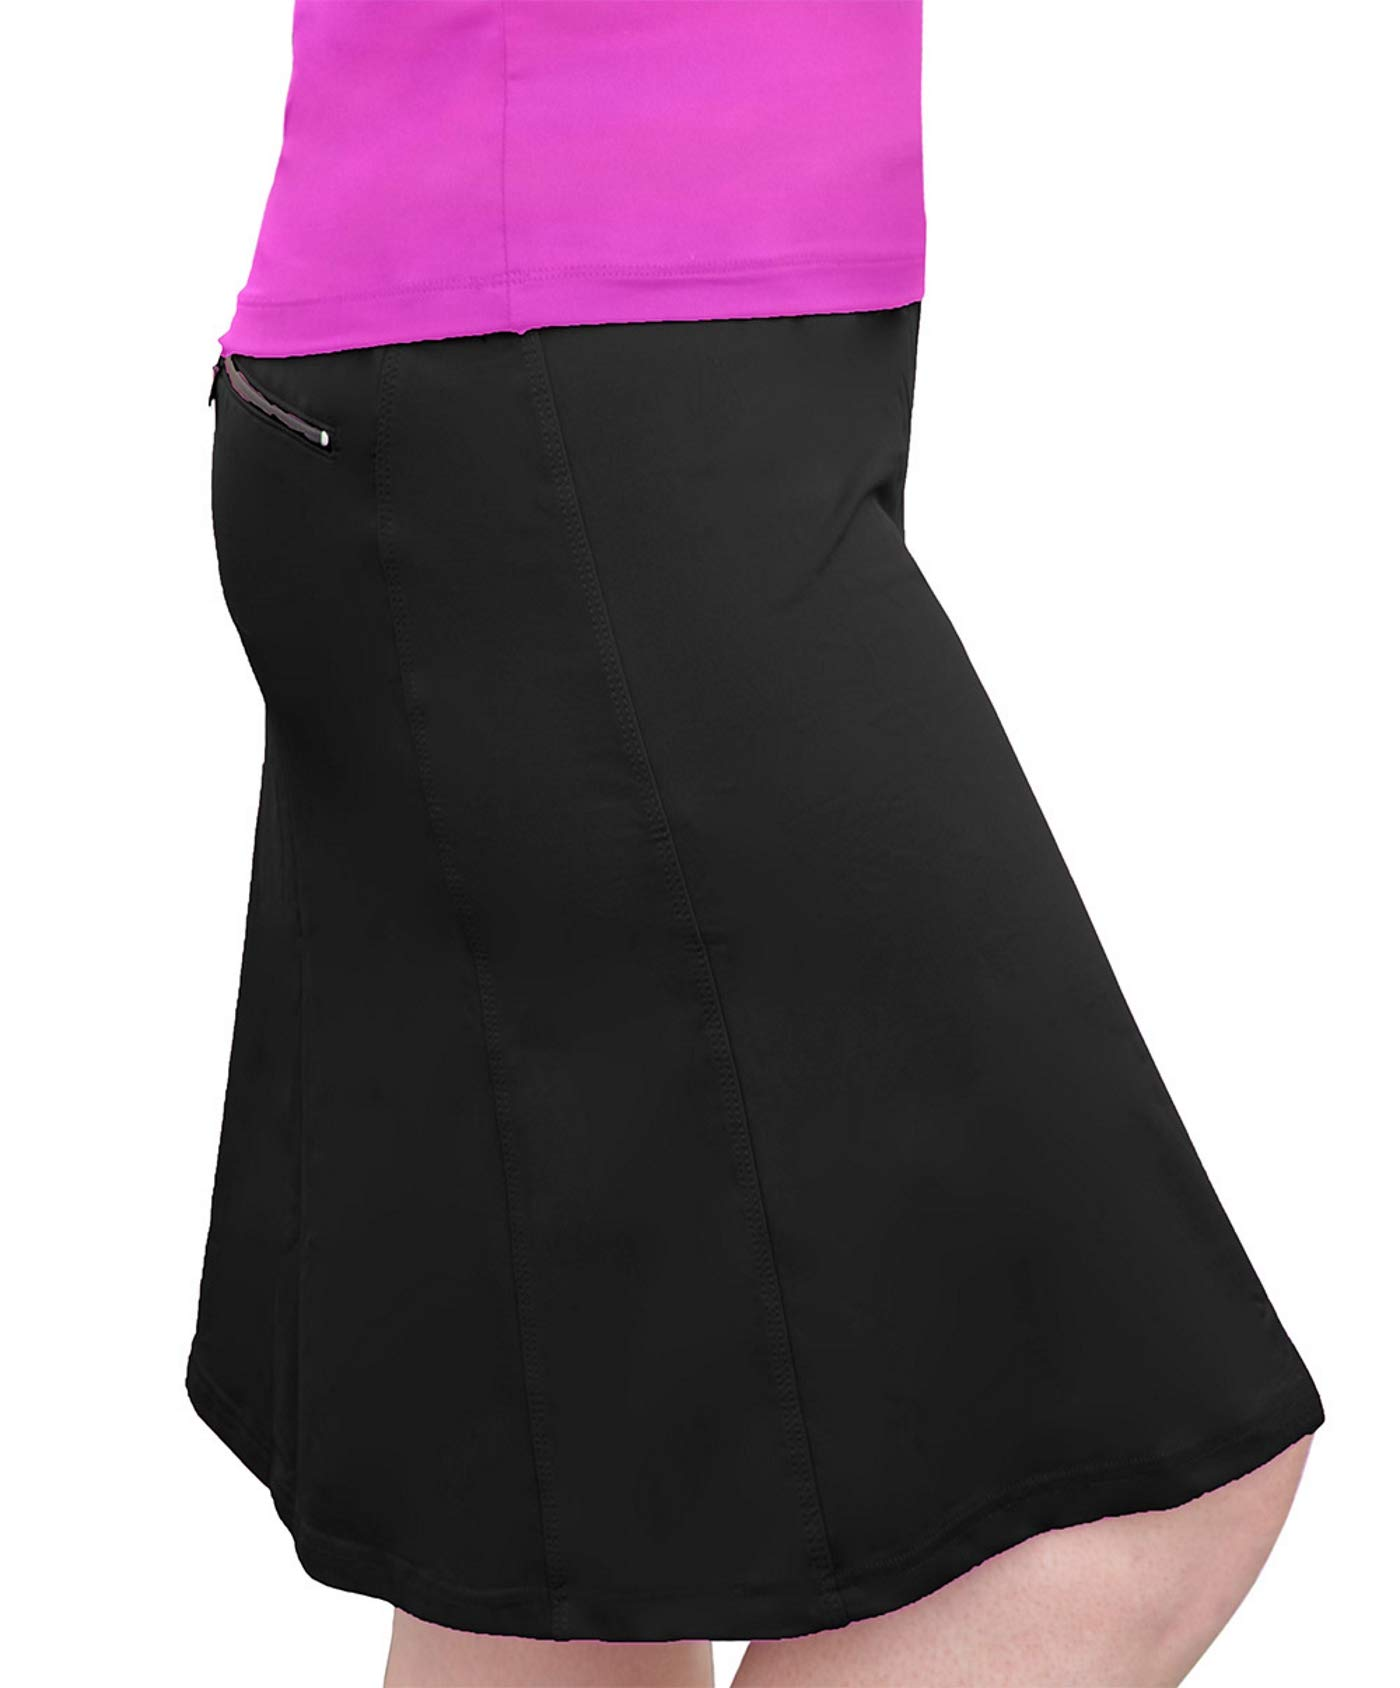 Kosher Casual Women's Modest Knee-Length Swim Sport Skirt with Built-in Shorts - Skort Style XL Black by Kosher Casual